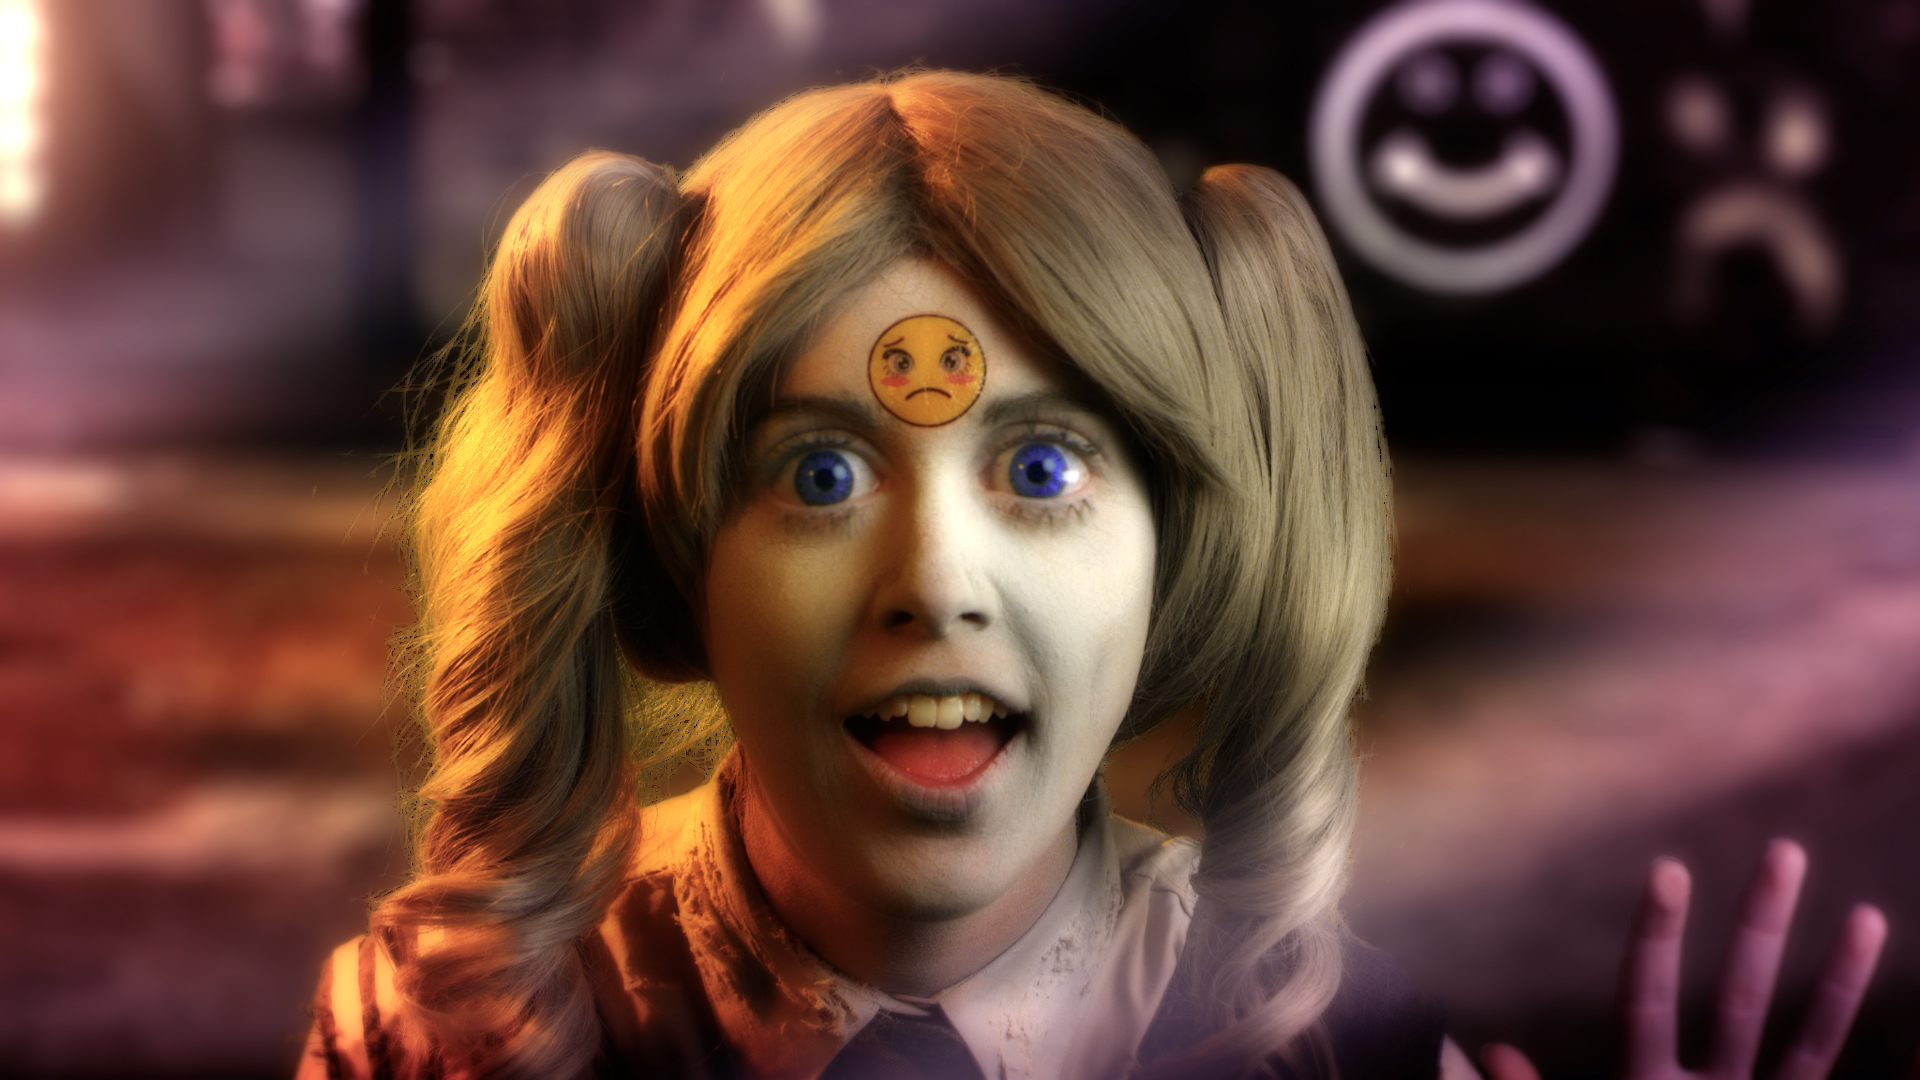 rachel maclean feed me dystopia video photography